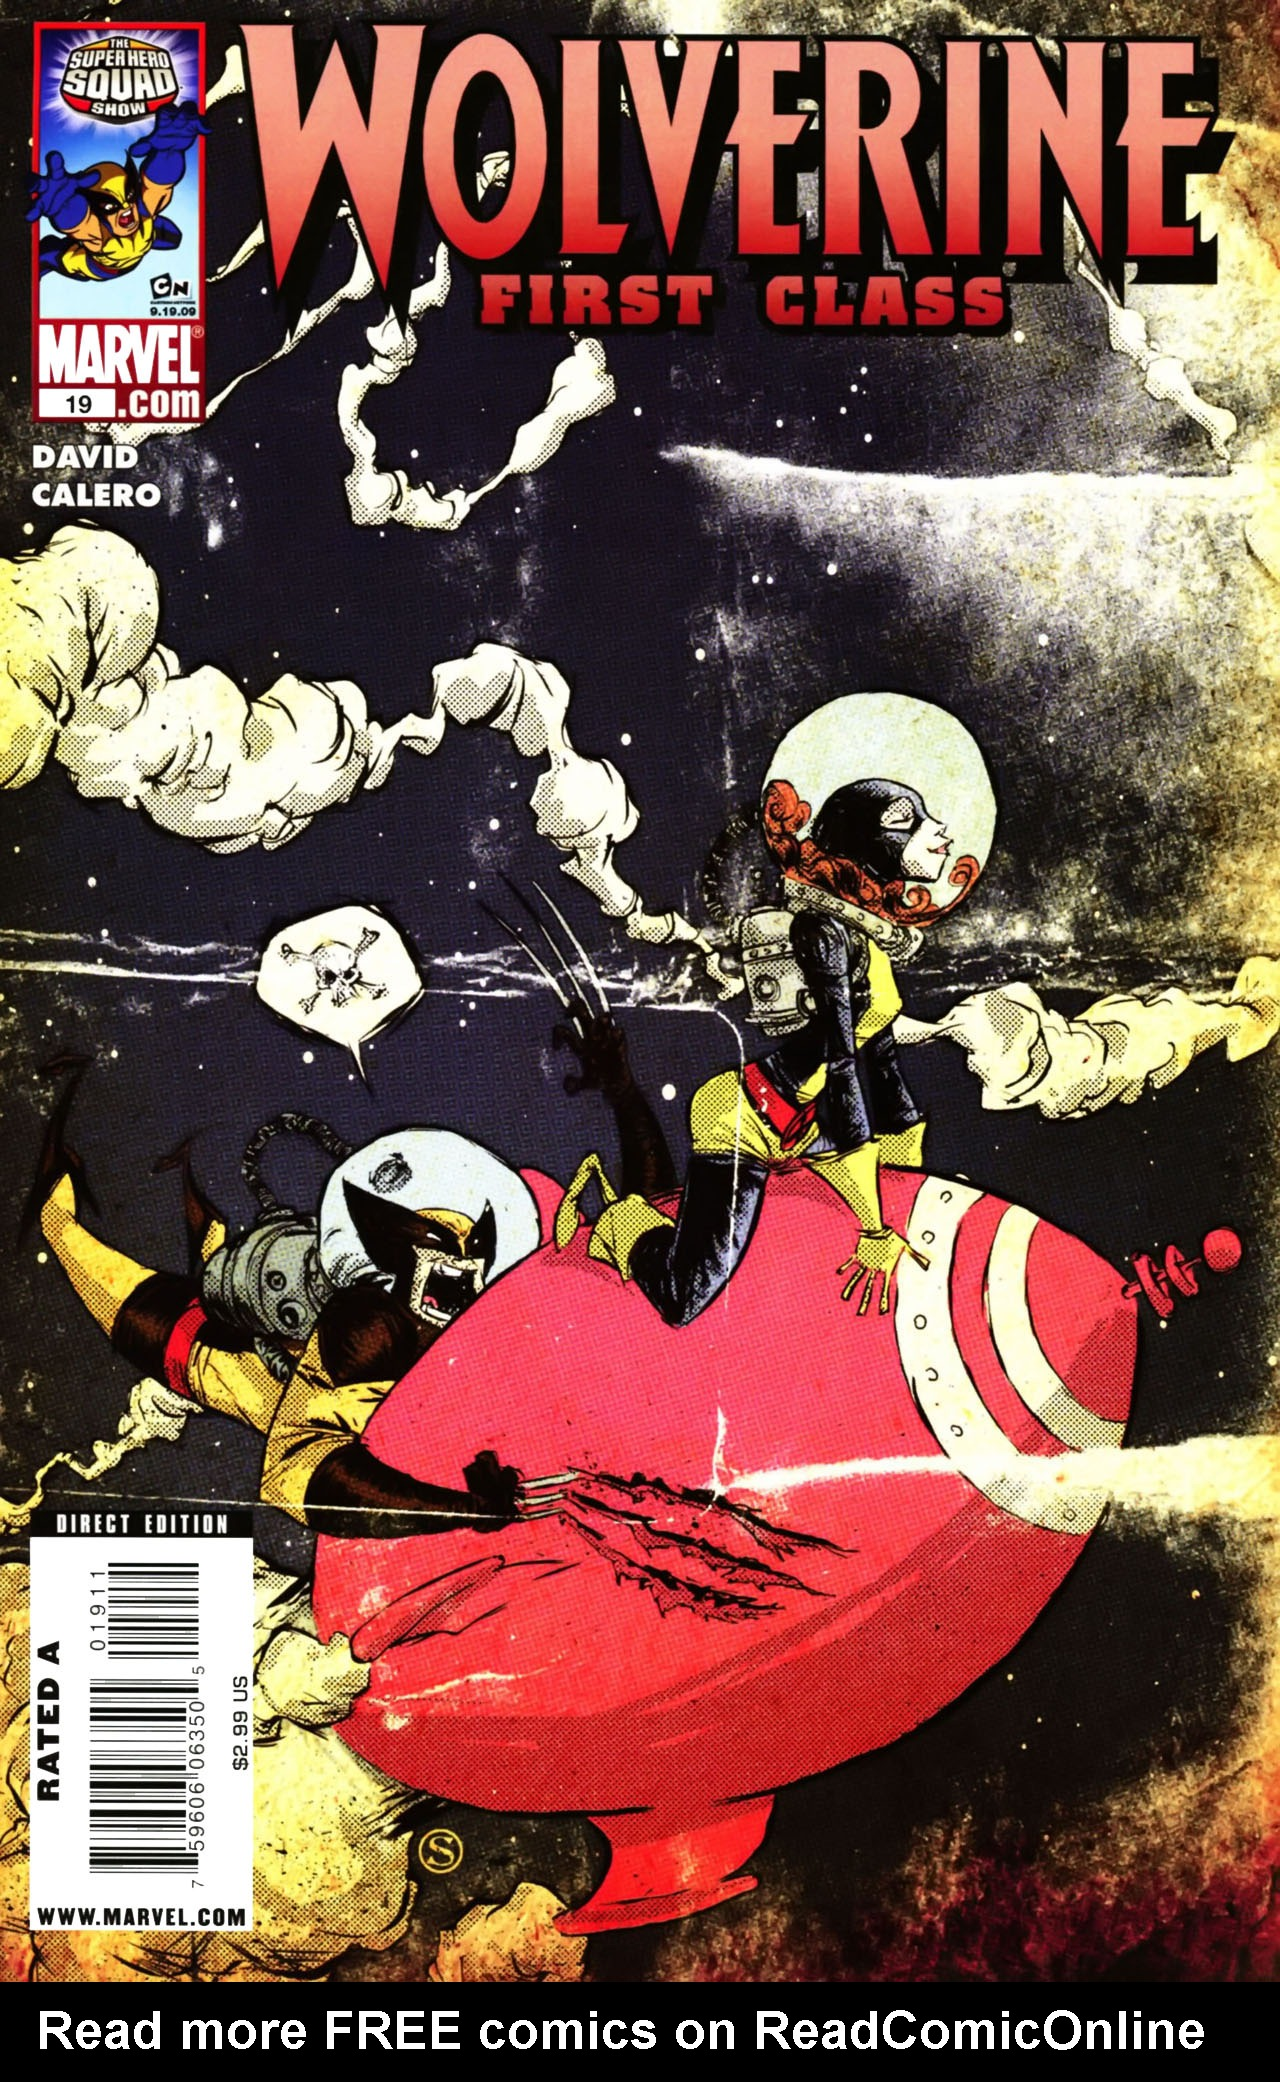 Read online Wolverine: First Class comic -  Issue #19 - 1